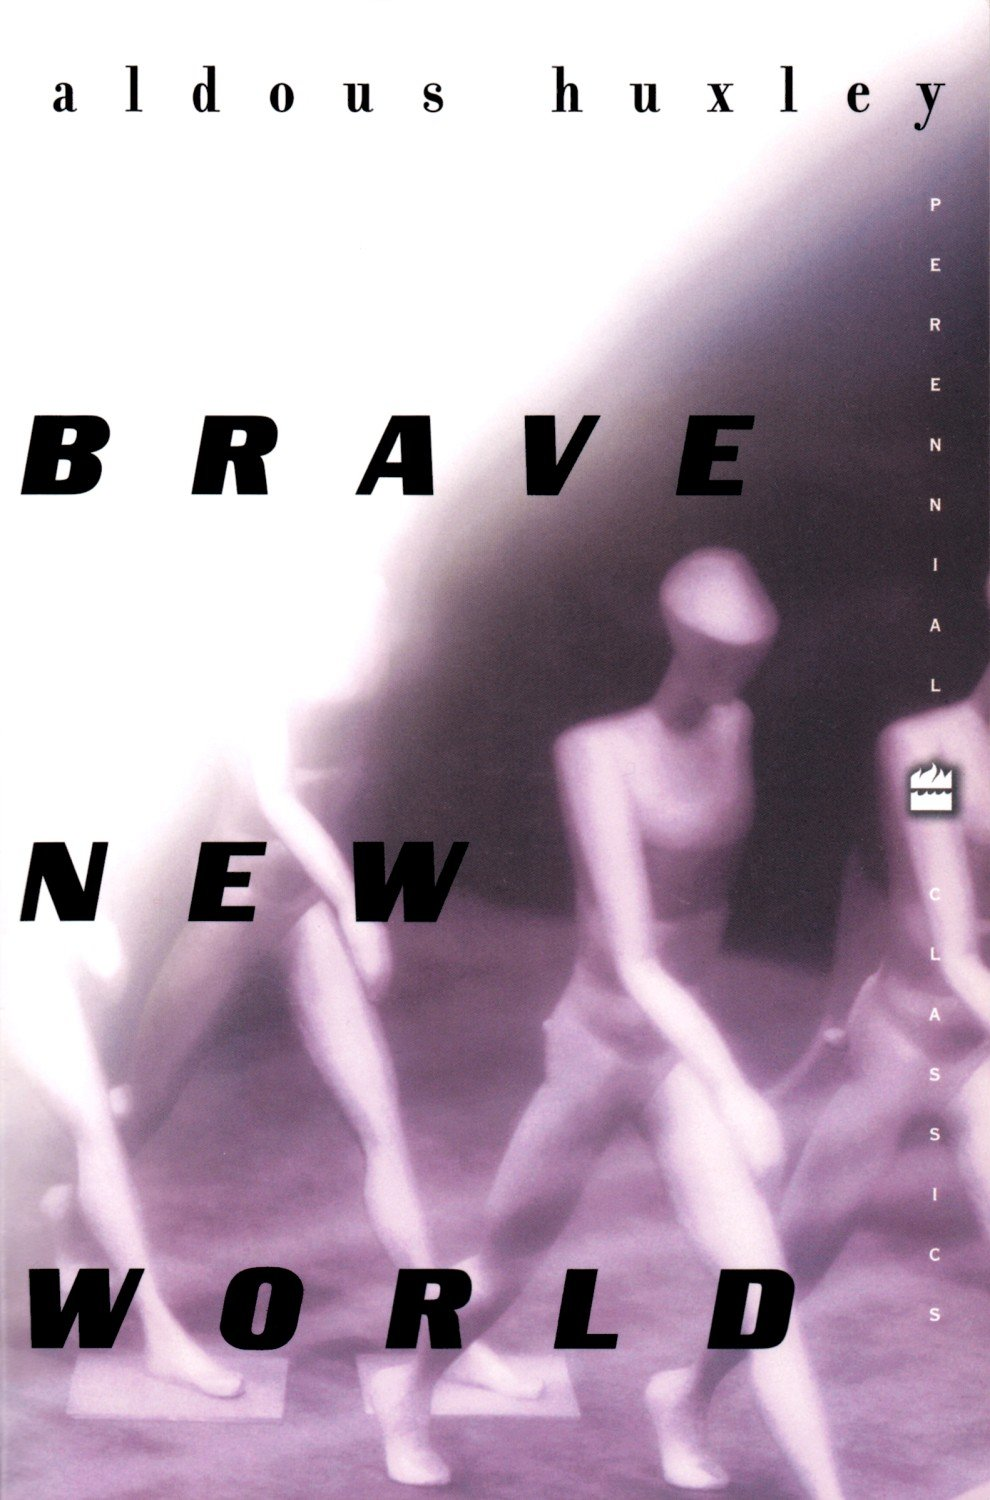 """an analysis of individualism in brave new world by aldous huxley Aldous huxley's brave new world (bnw) displays a dystopian world view  in  the character analysis, the characters john the savage, lenina crowne  in  bnw: """"where should the line be drawn between individualism."""